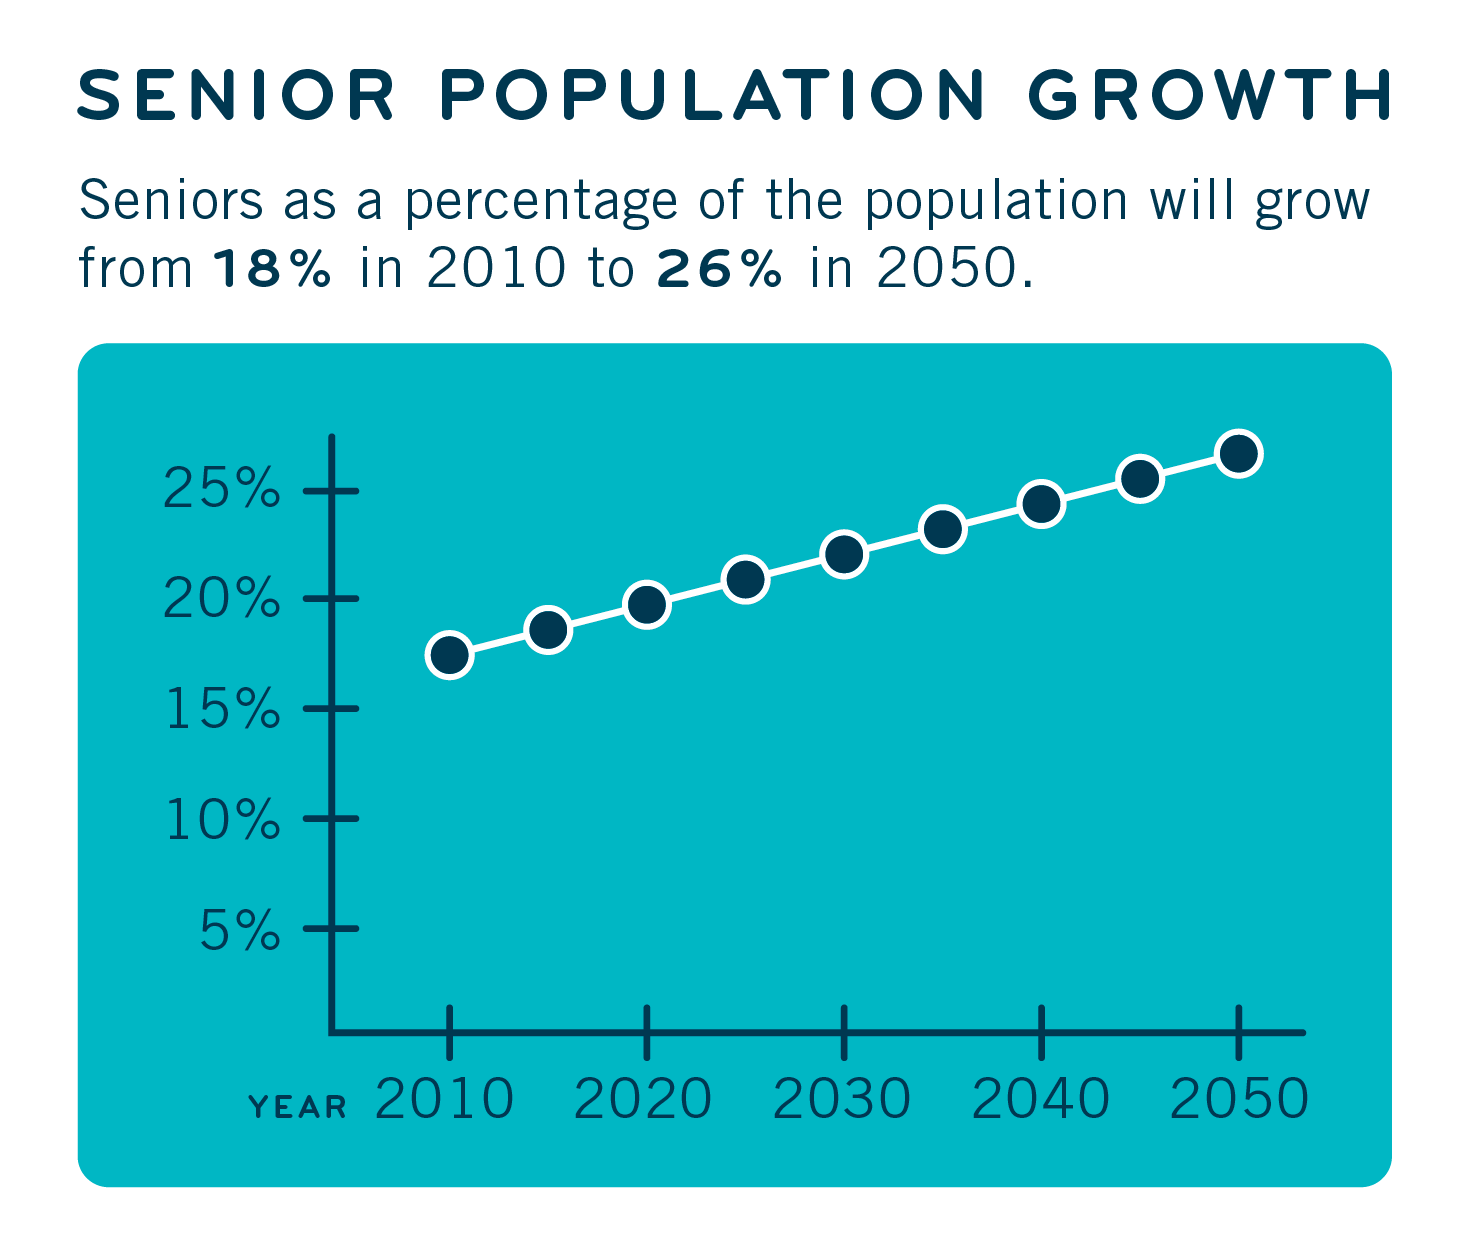 MOW_GraphsCharts_300_SeniorPopulationGrowth3